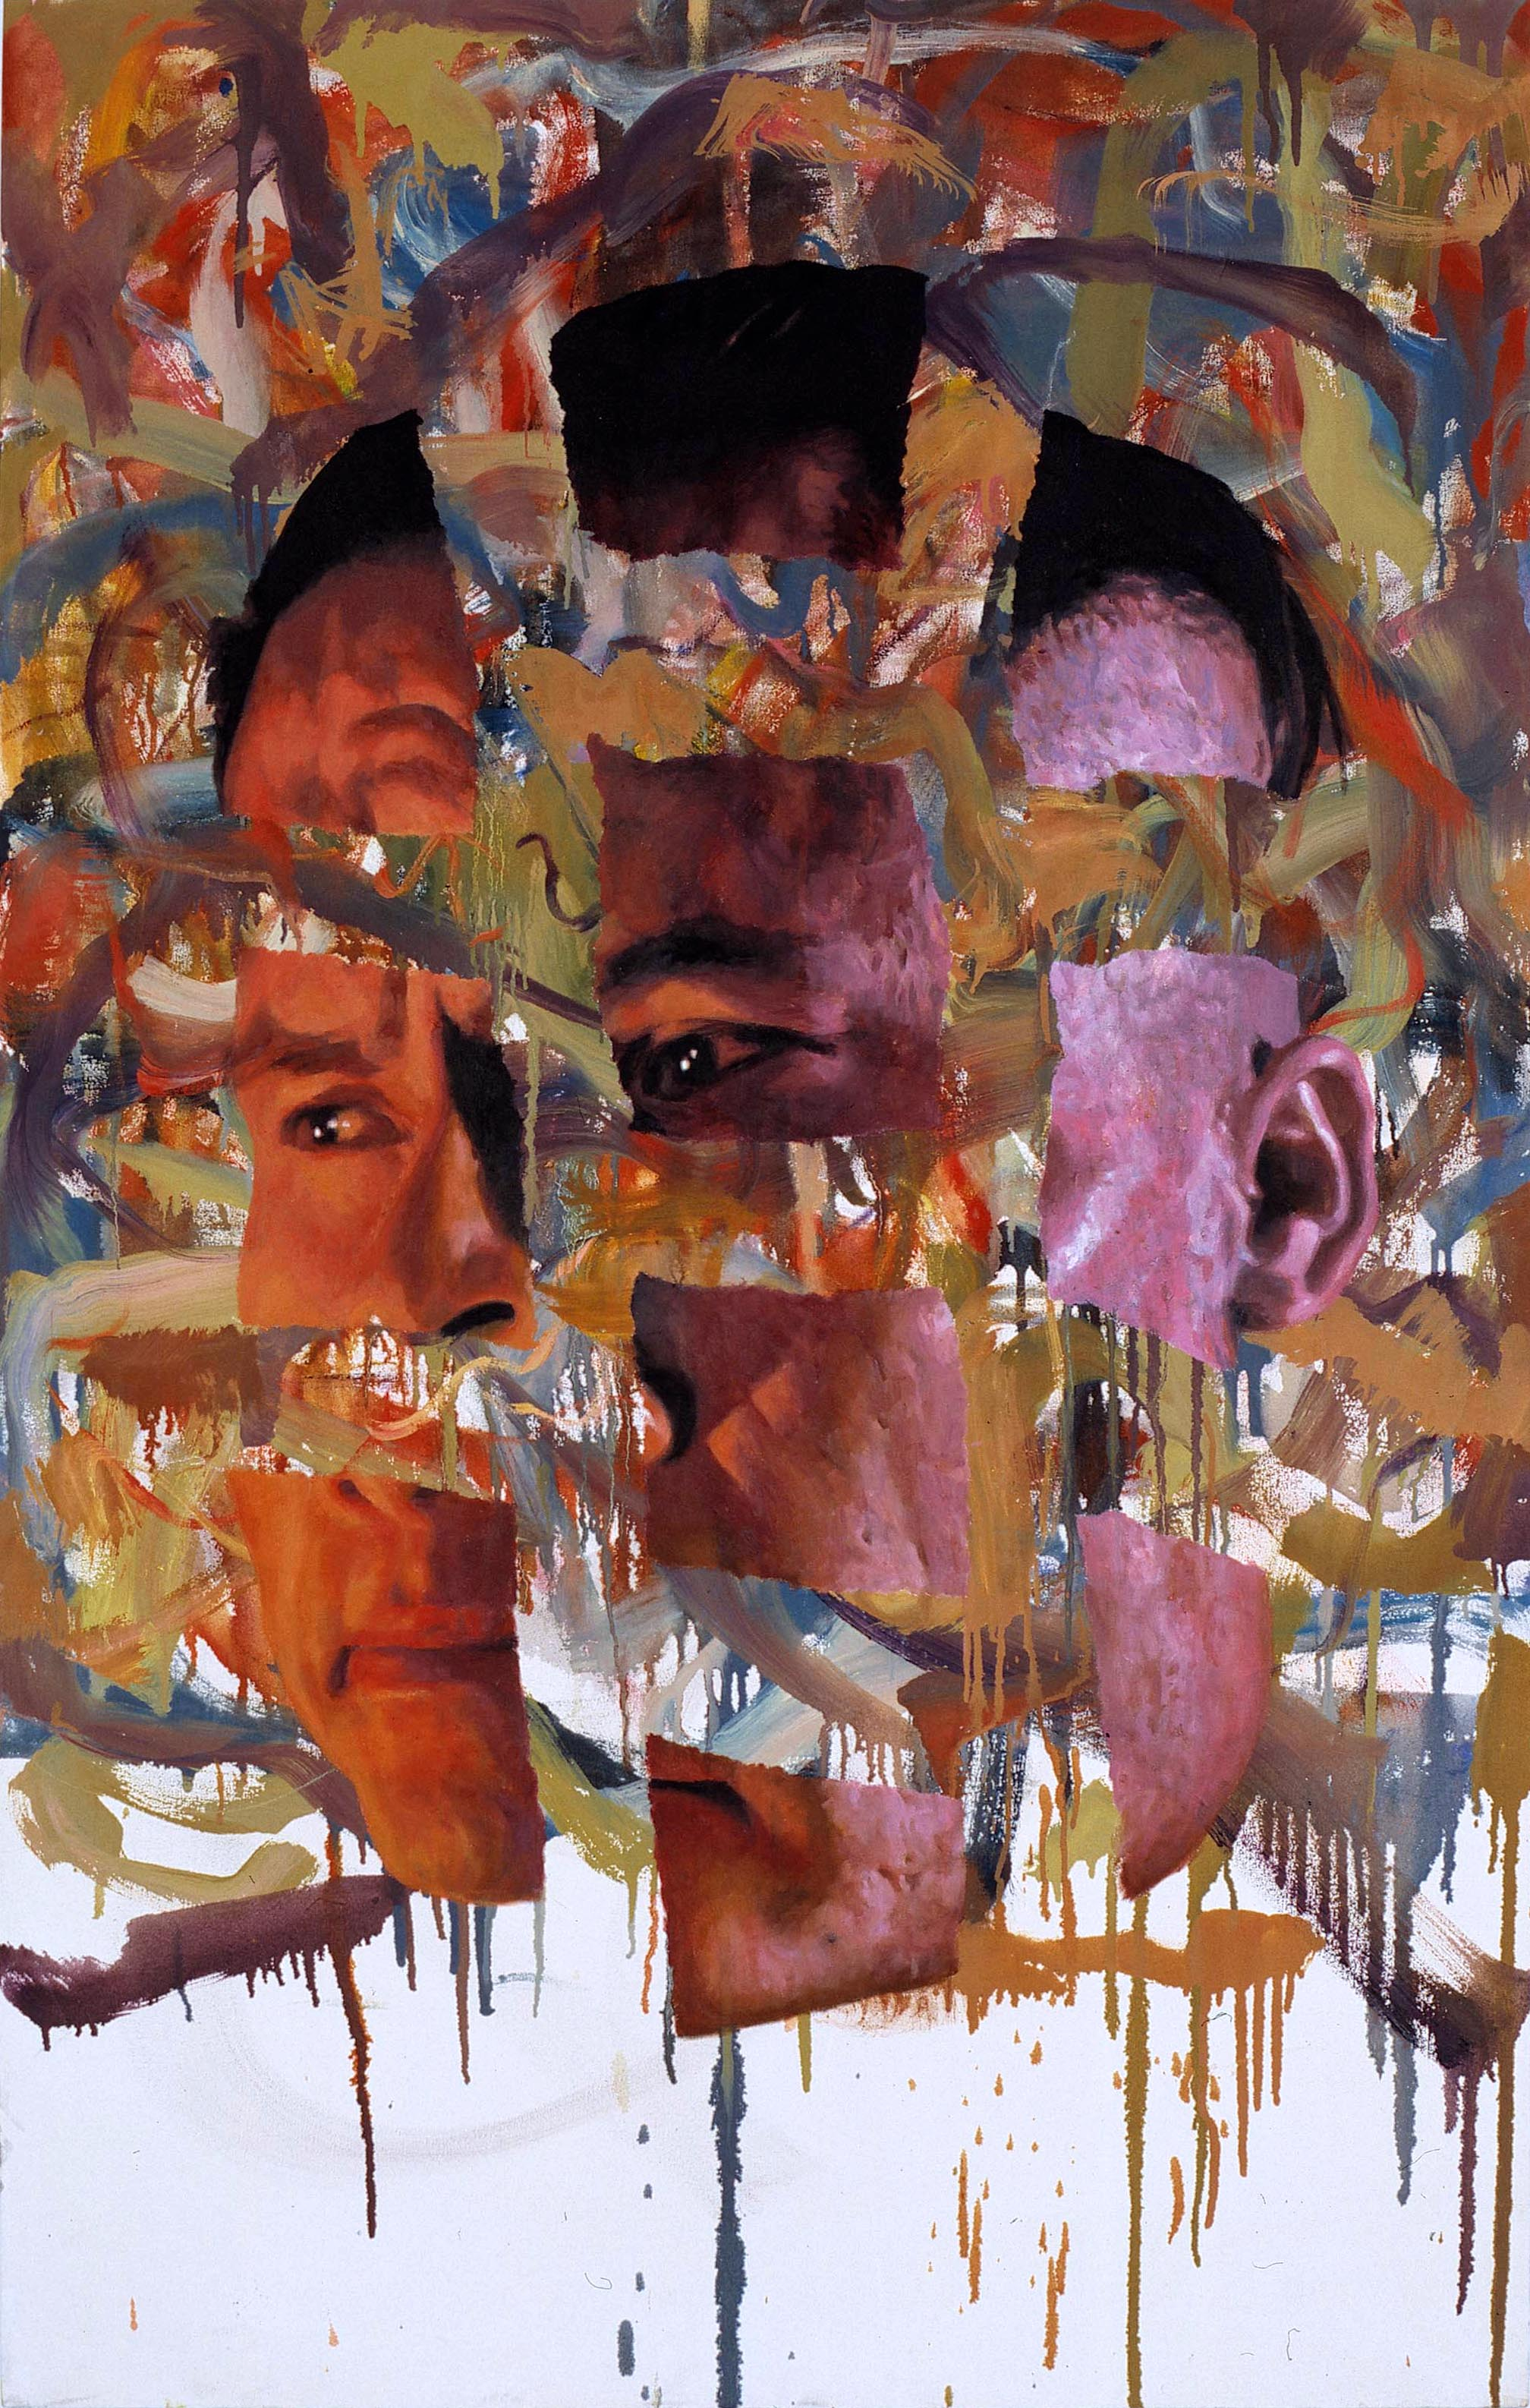 Untitled, Ripped up Face Painting, 2005 oil on canvas 153 x 97,5 cm - 60 1/4 x 38 3/8 inches